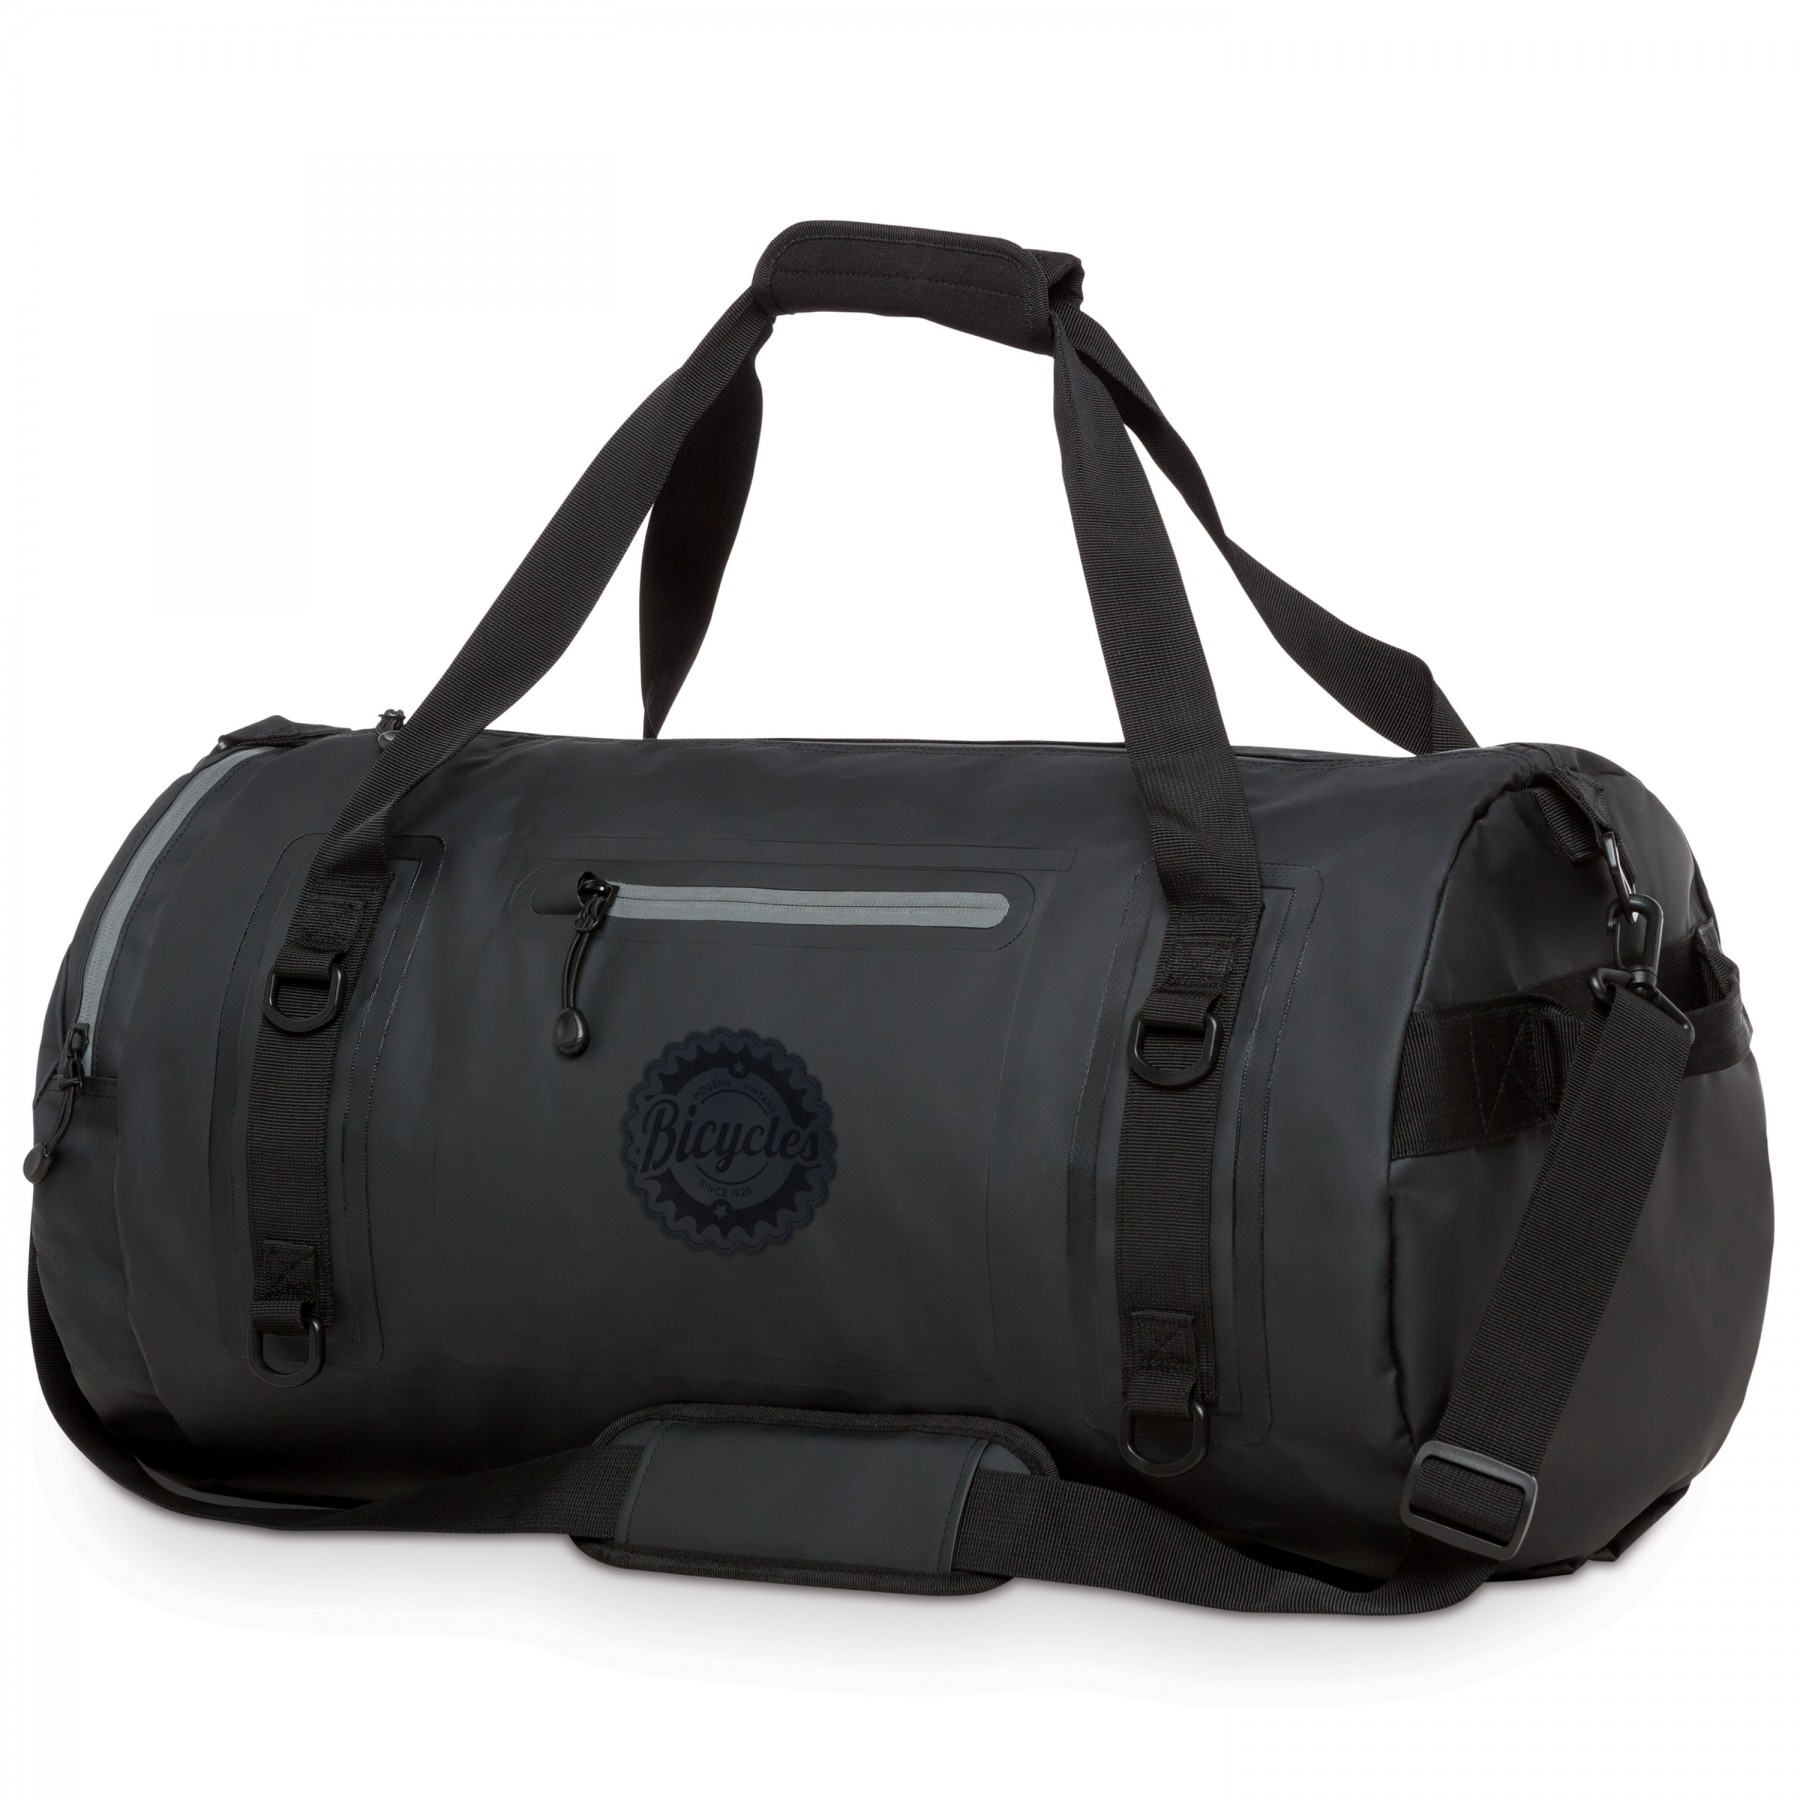 Call Of The Wild Water Resistant 50l Duffle, BG201, One Colour Imprint